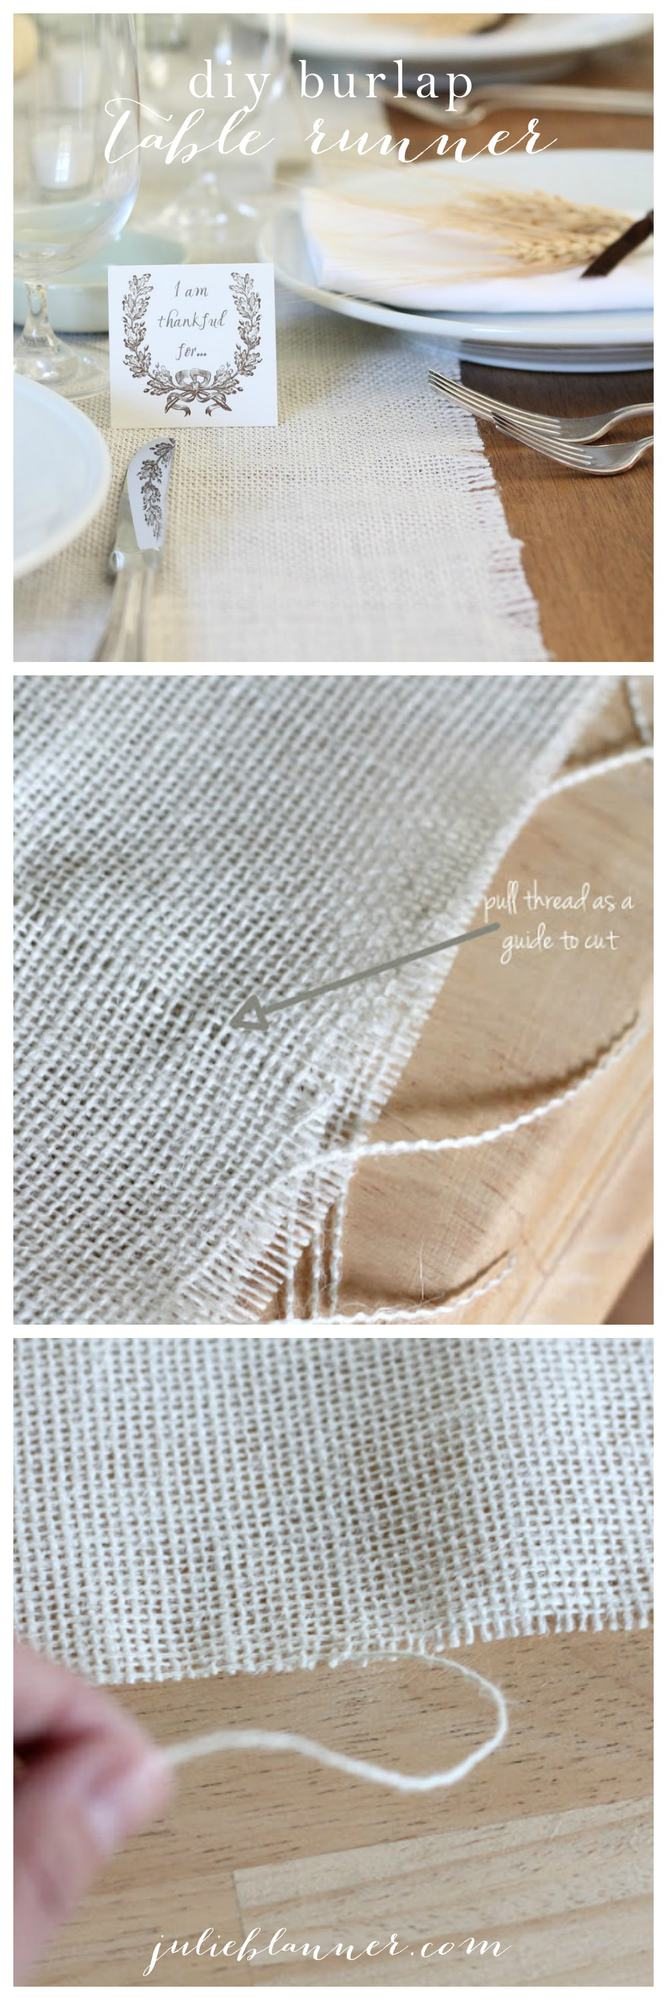 Easy diy burlap table runner - beautiful table decor & a great gift